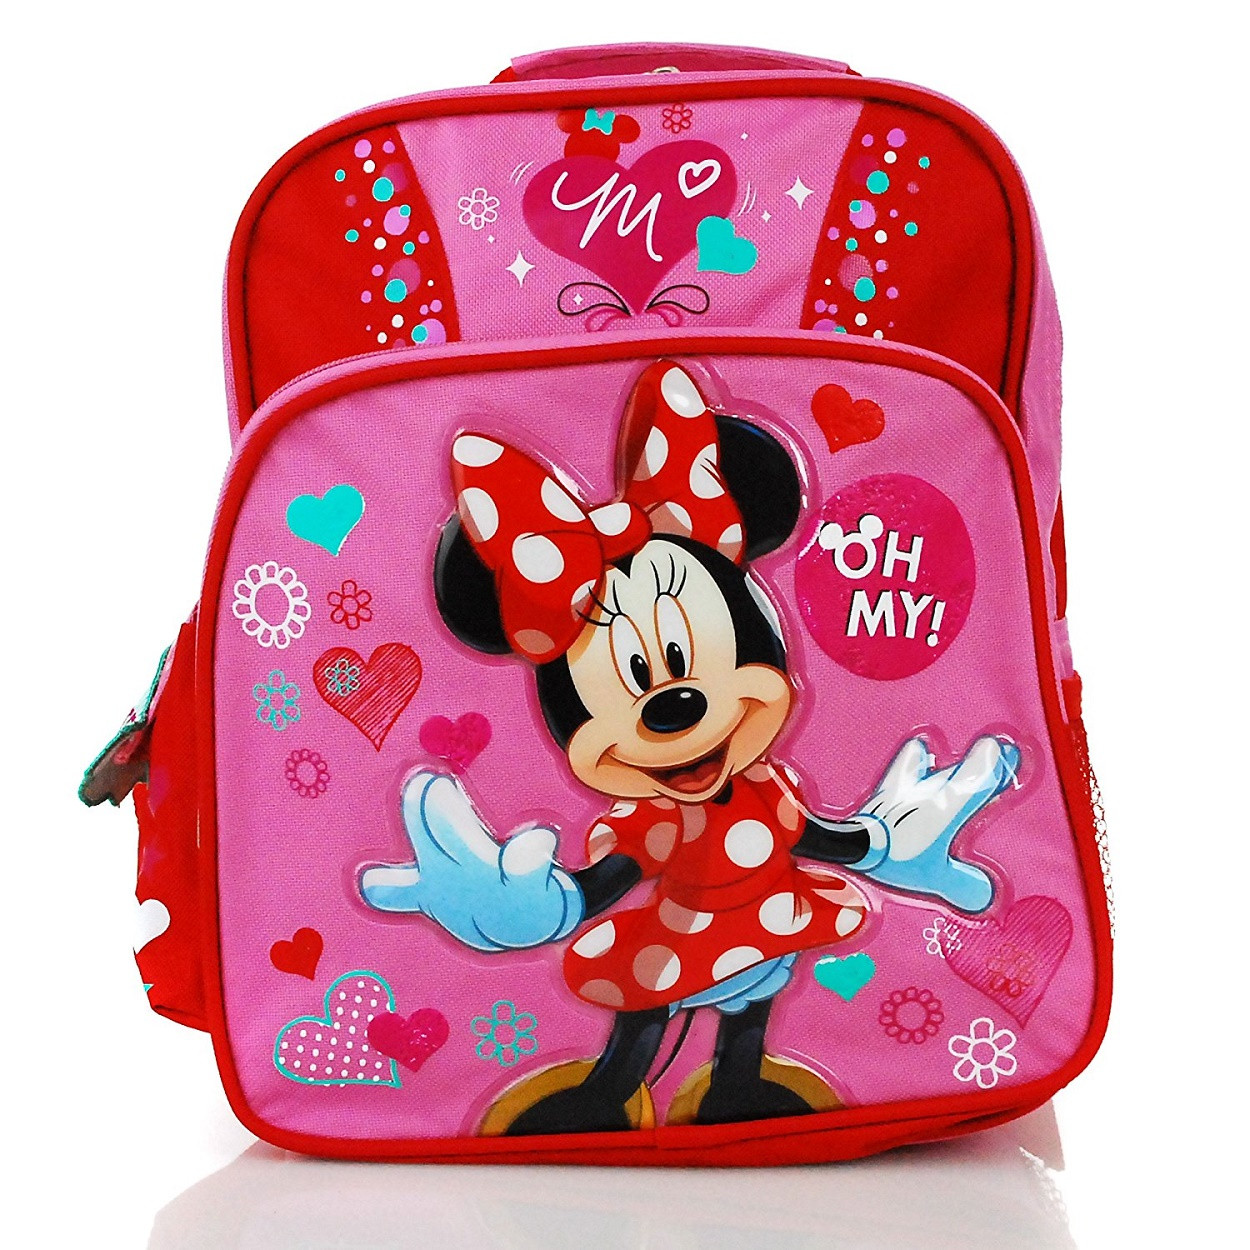 874d3926ced Backpack - Minnie Mouse - Small 12 Inch - Oh My!